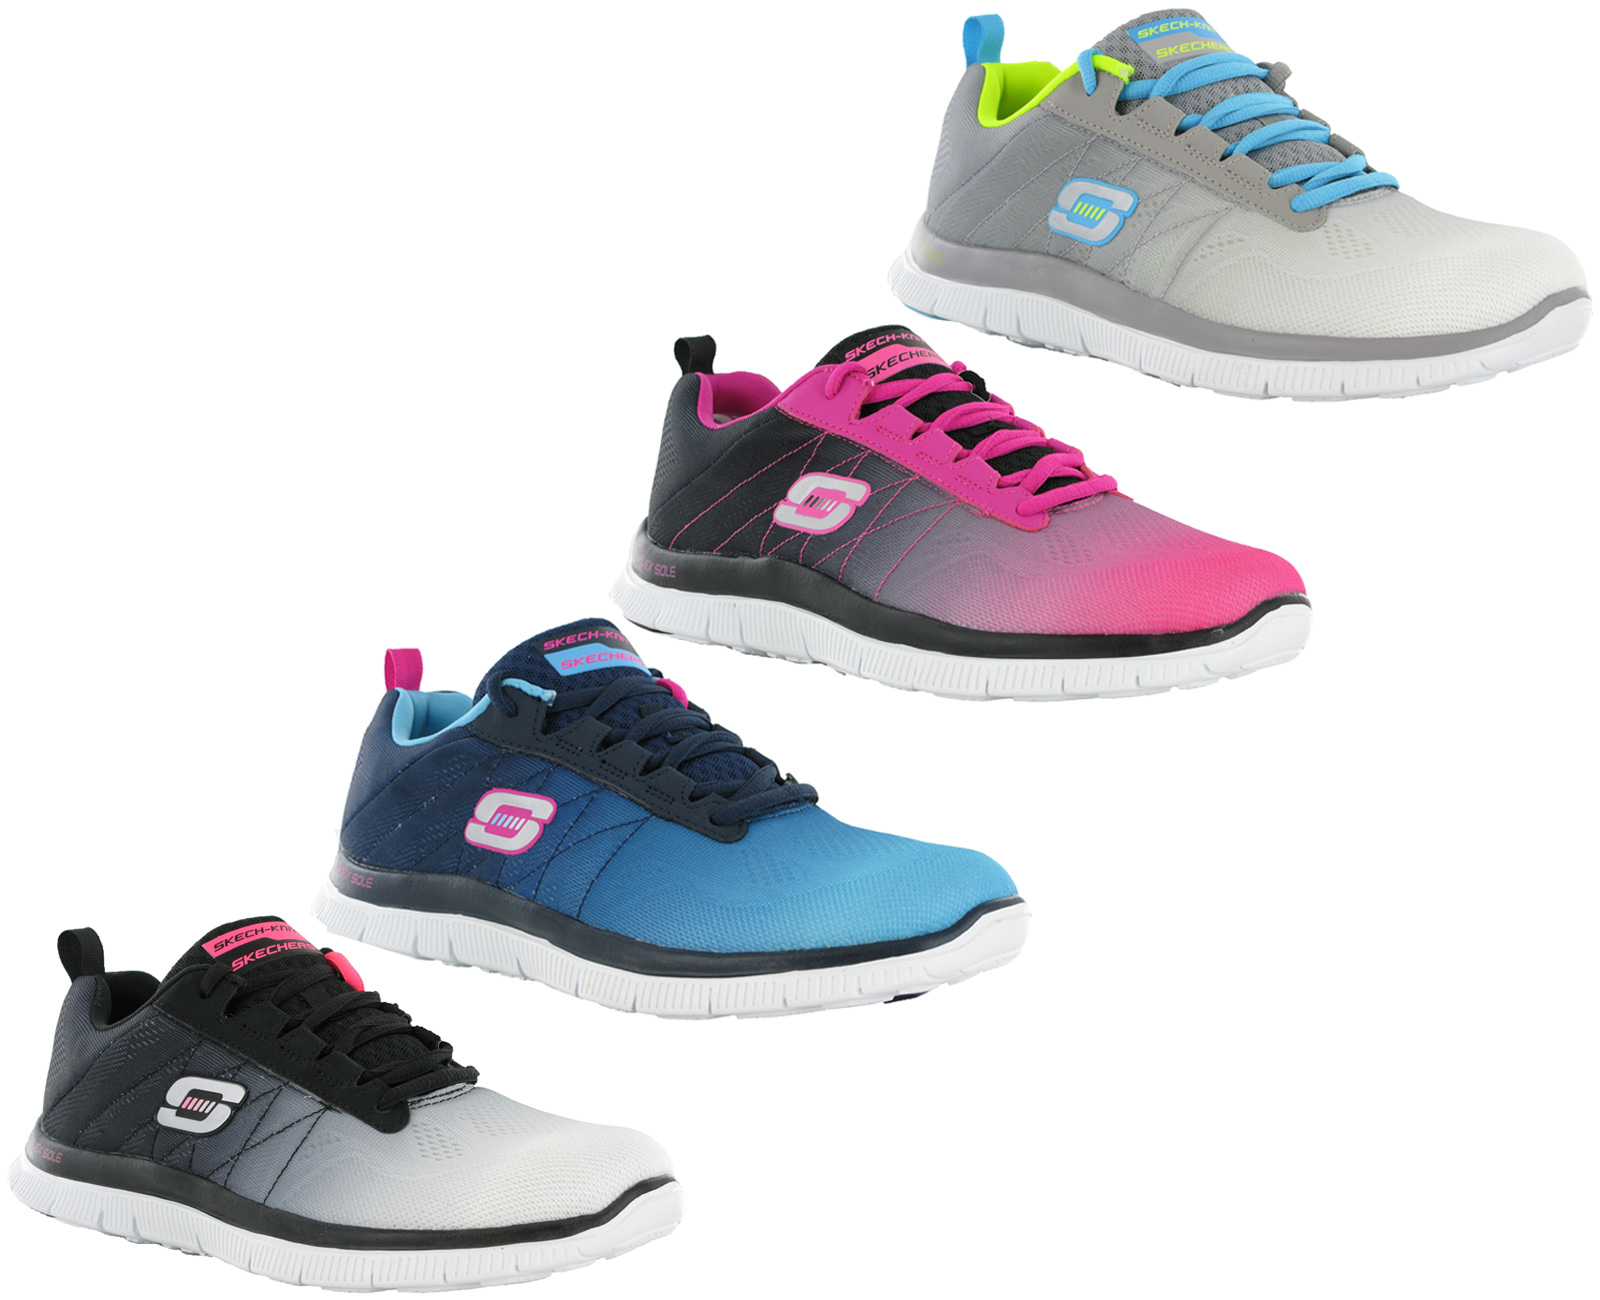 Buy Skechers Shoes Online Singapore